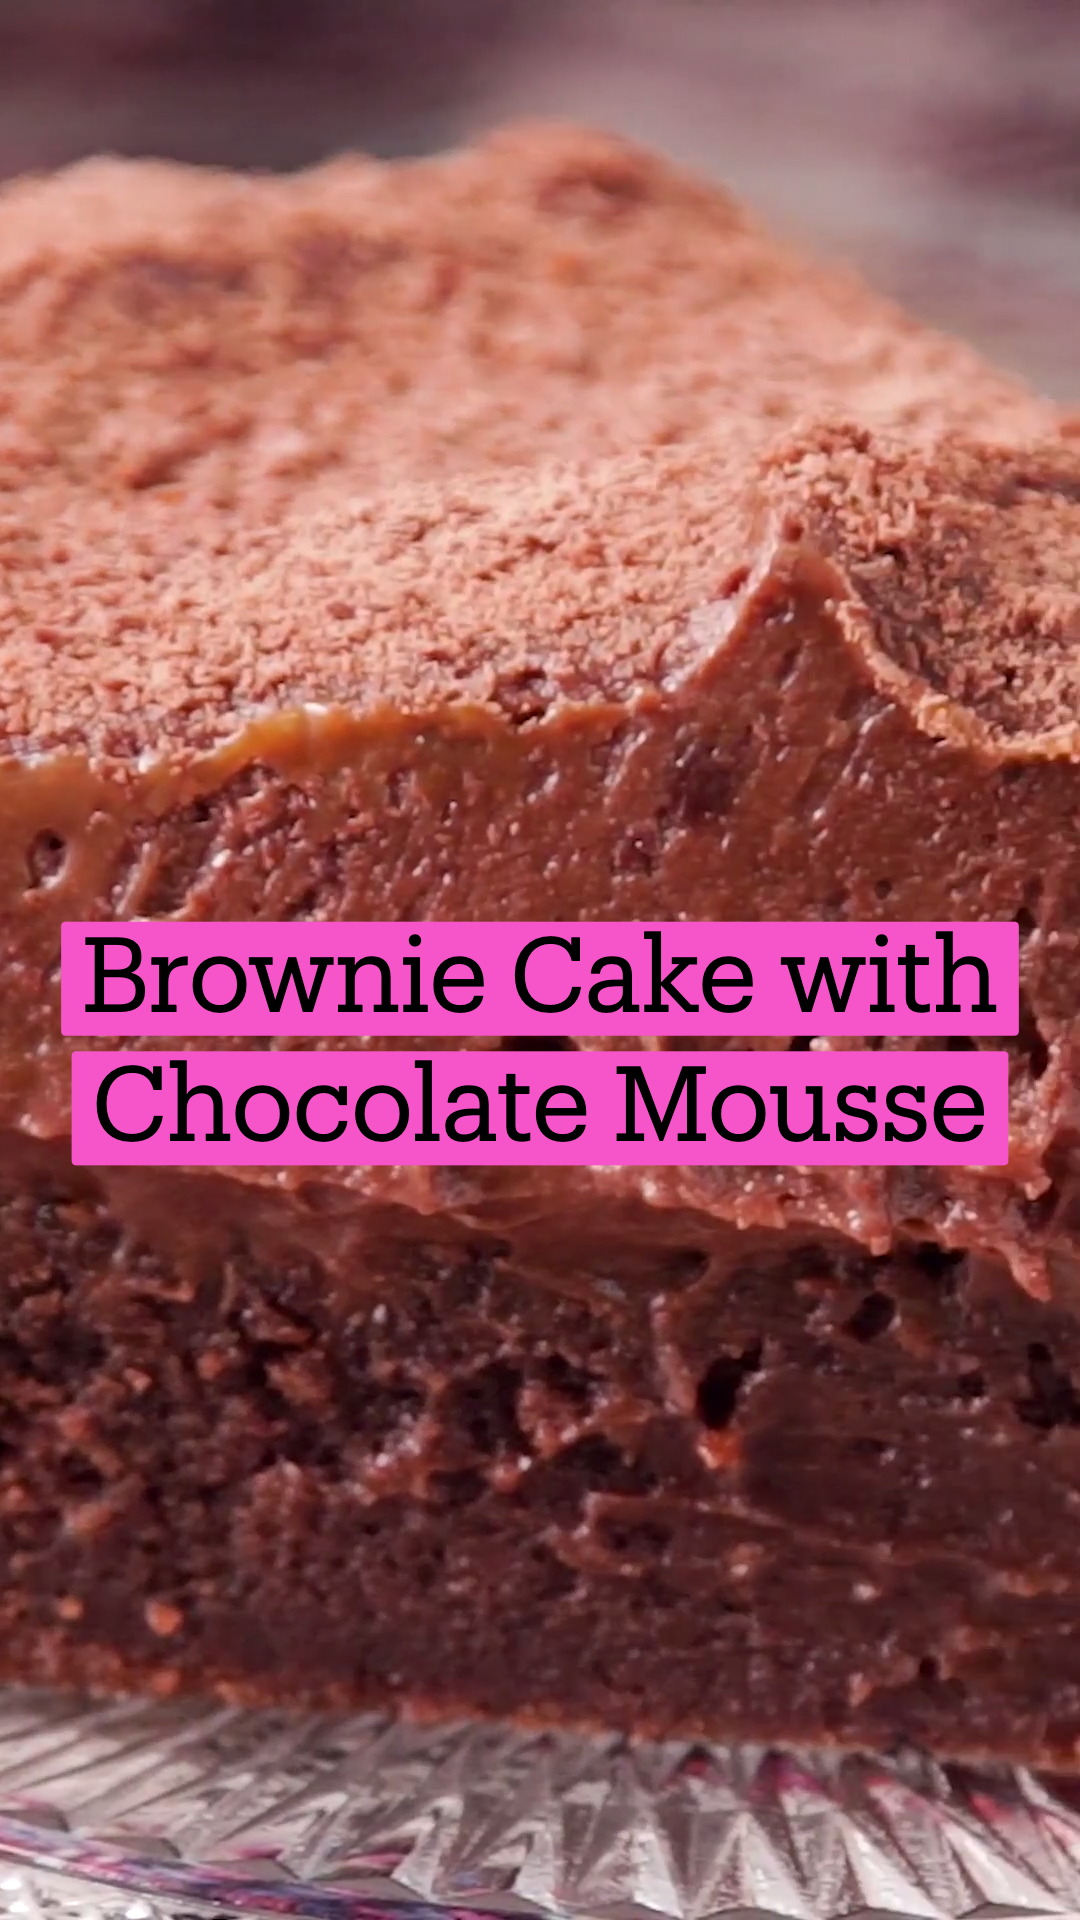 Photo of Brownie Cake with Chocolate Mousse